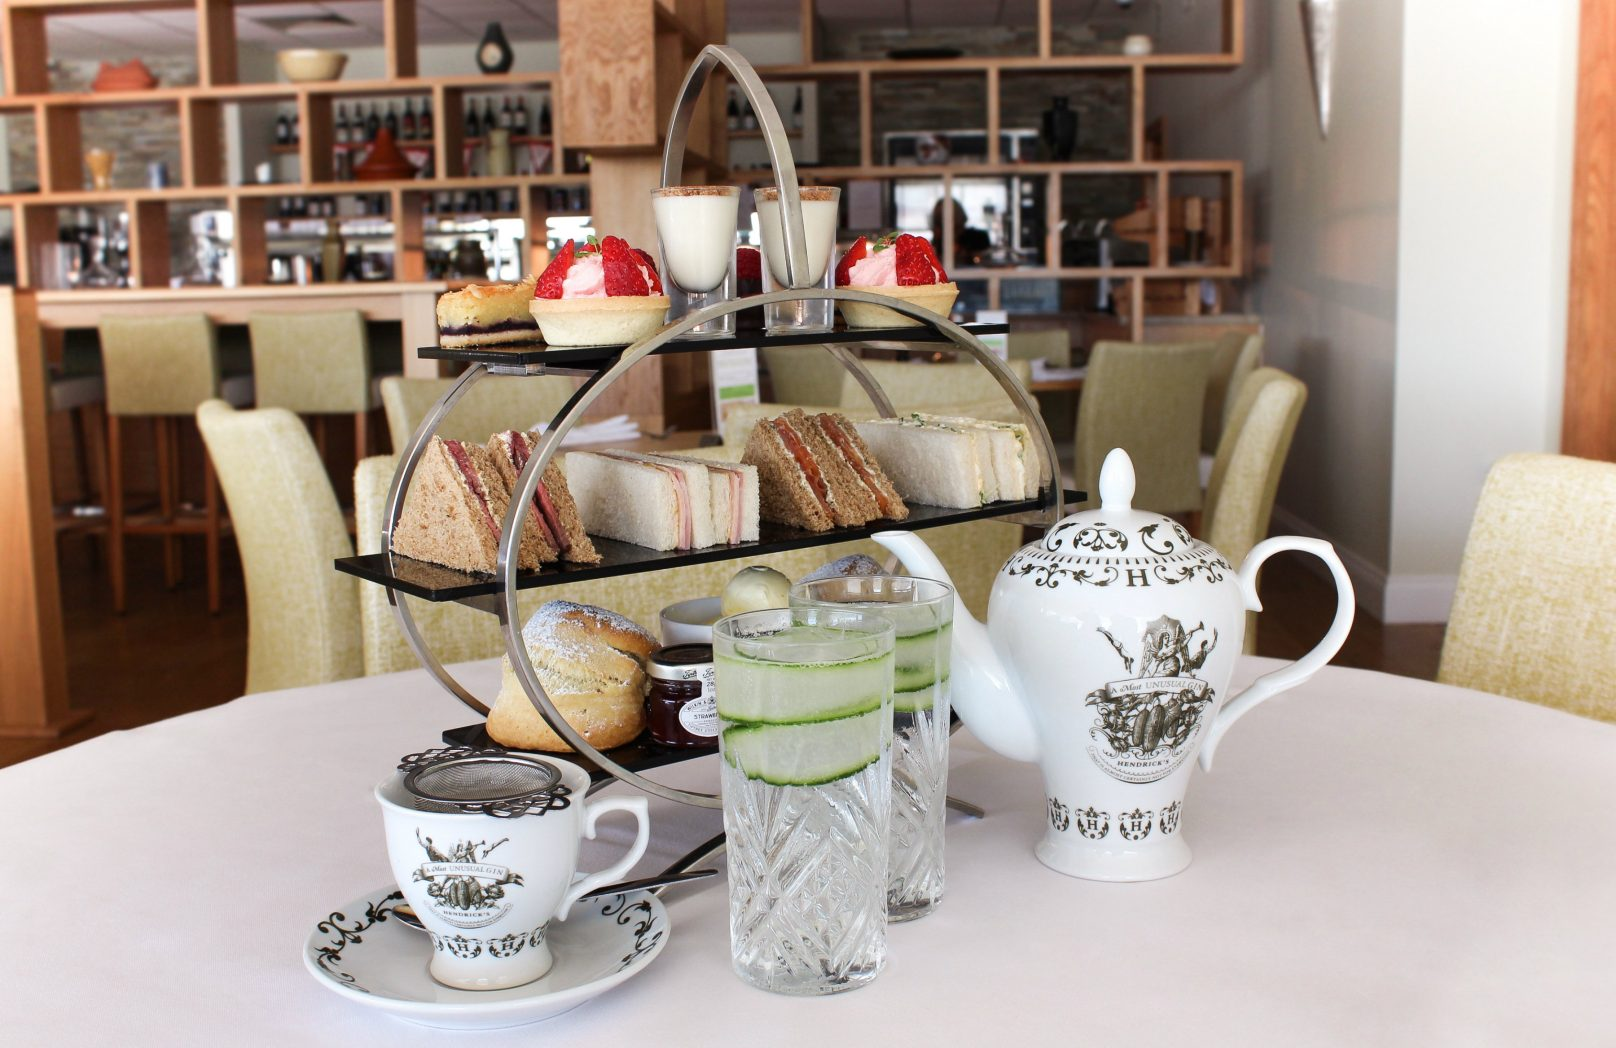 G&T afternoon tea - Stoke by Nayland